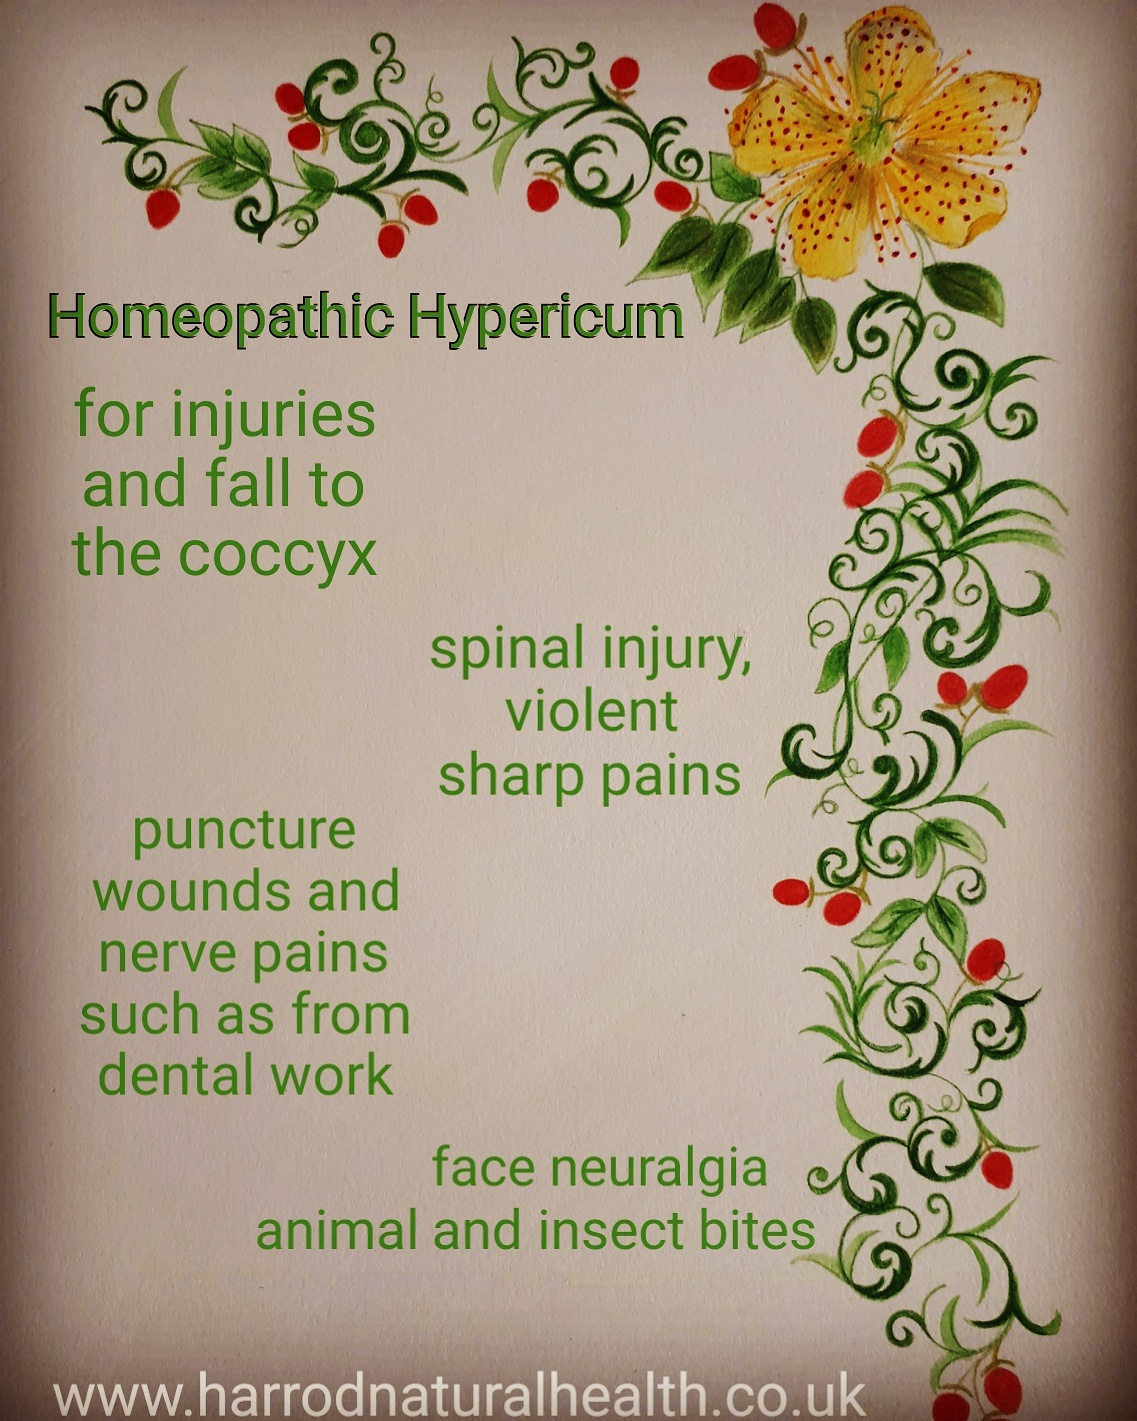 Homeopathic Hypericum for injuries